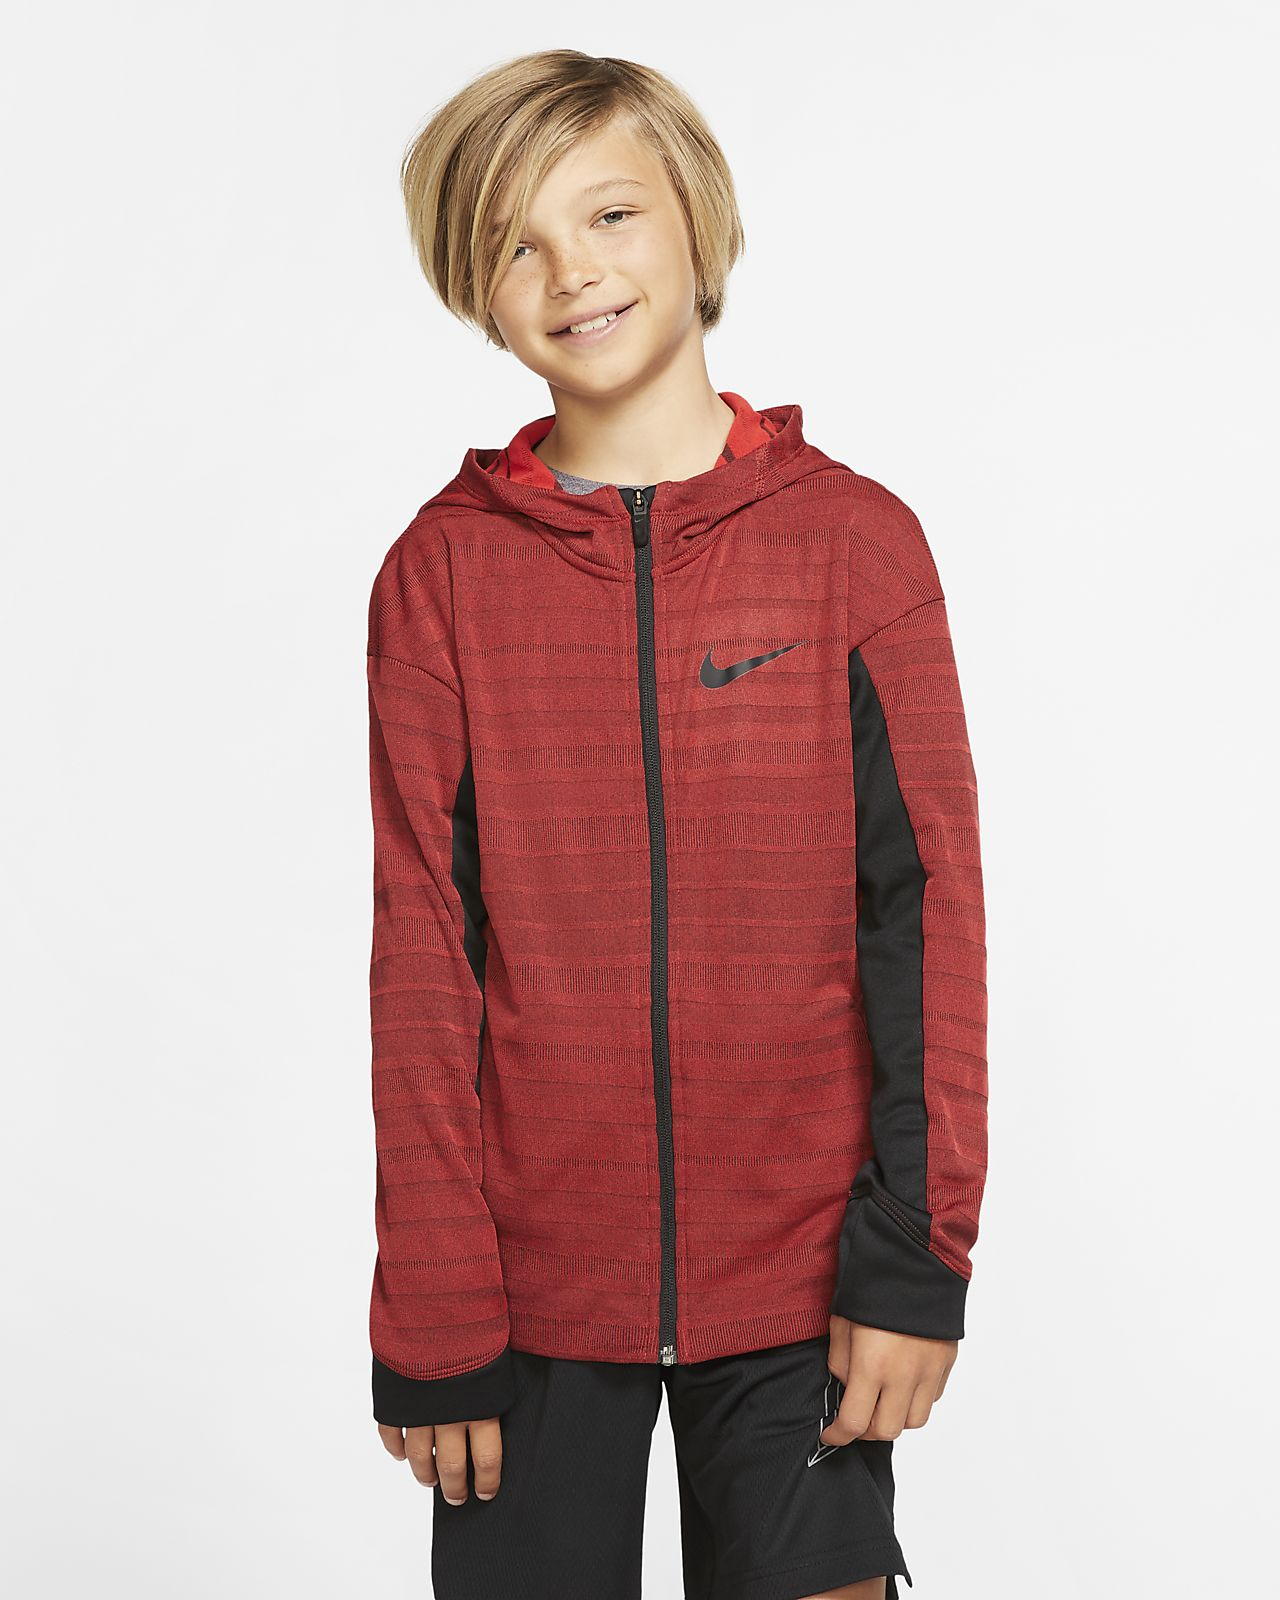 Nike Boys' Full-Zip Training Hoodie